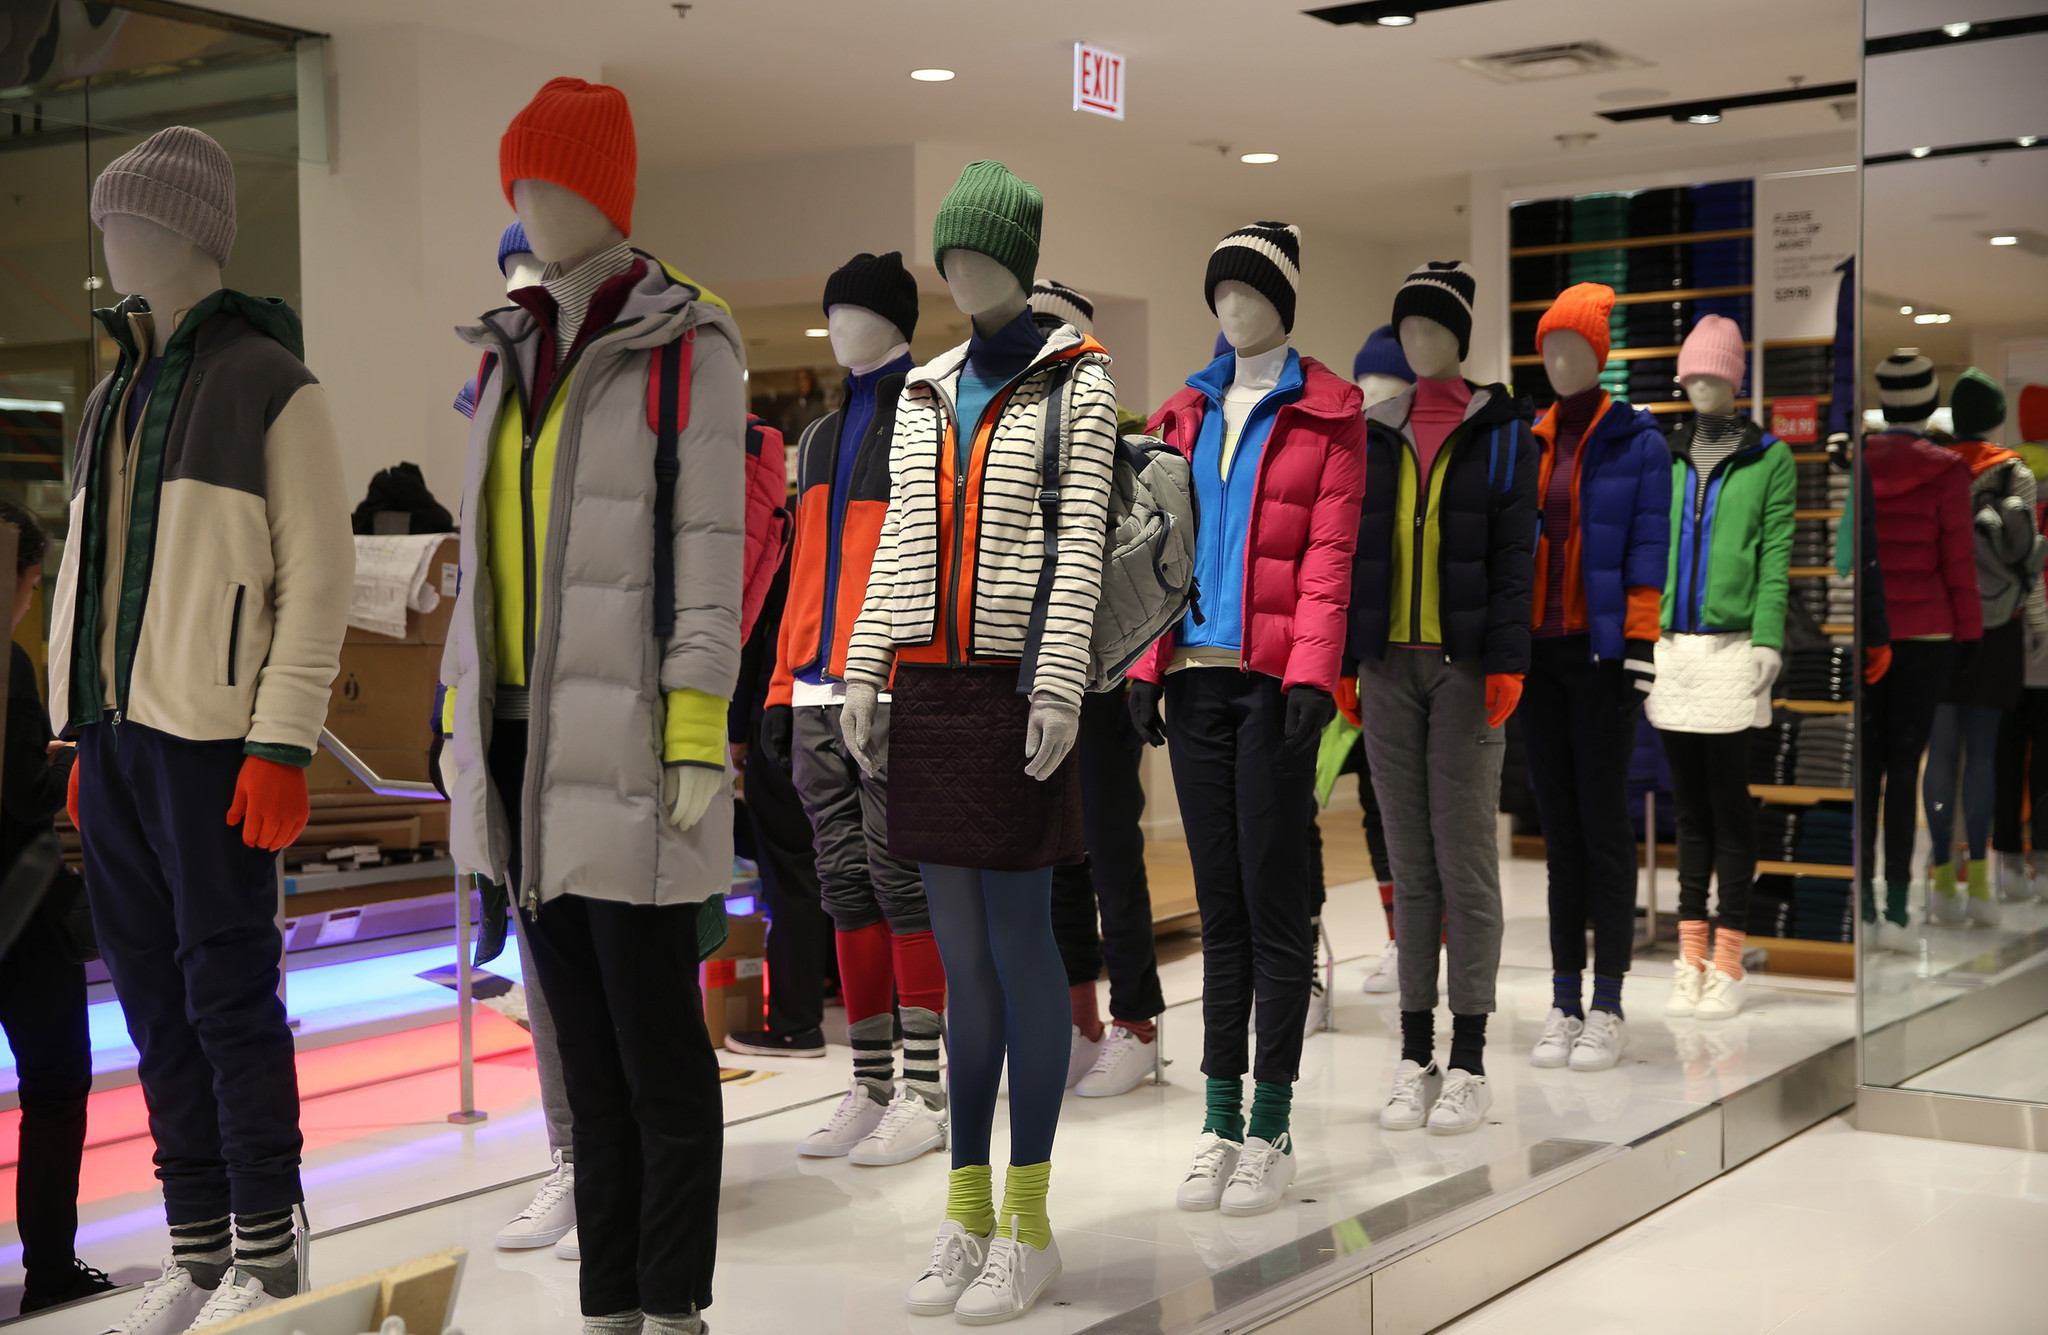 Exclusive Clothing Stores In Chicago